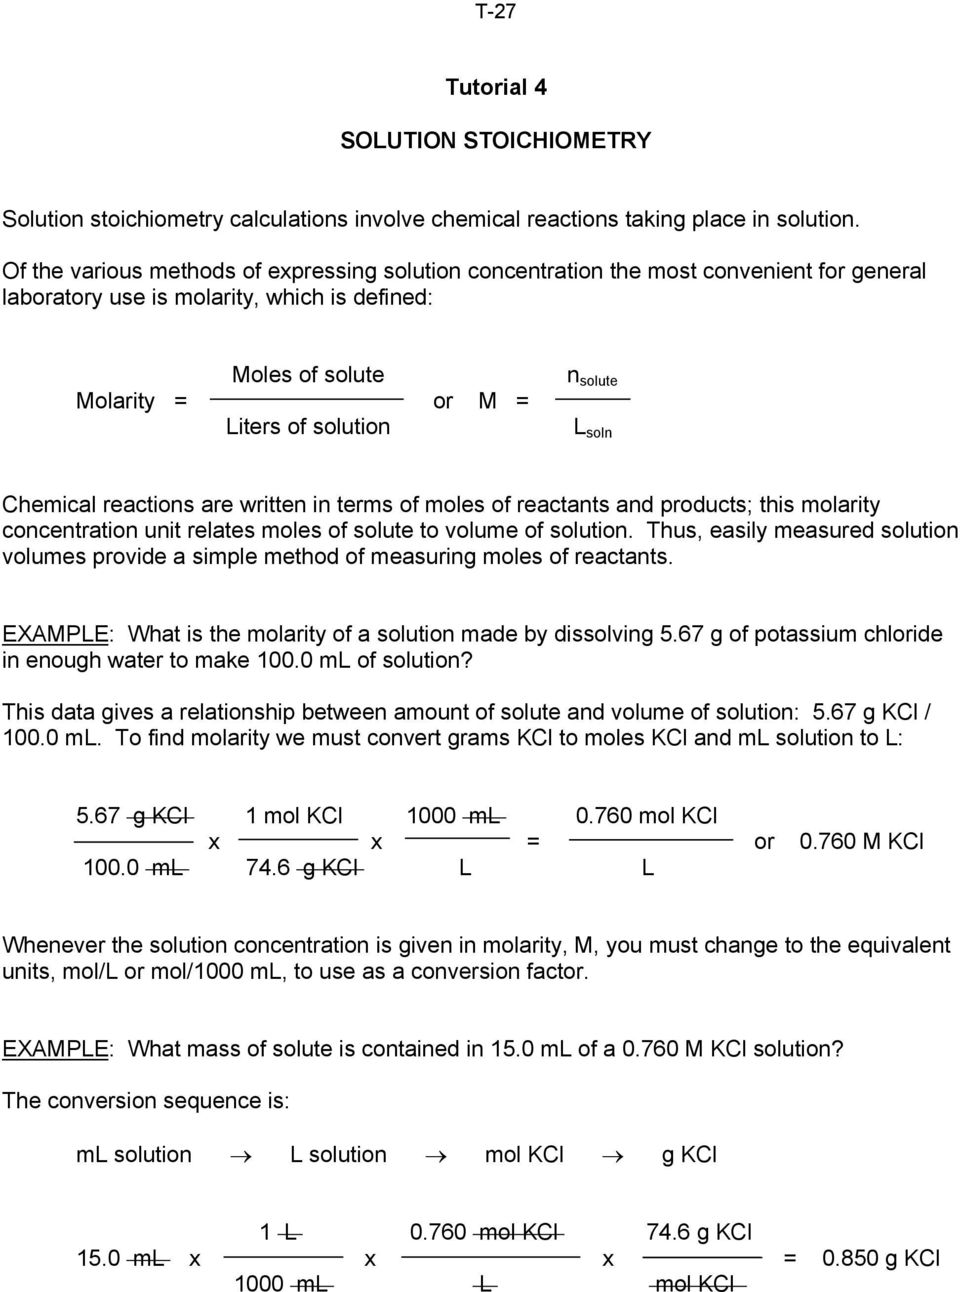 worksheet Molarity Calculations Worksheet tutorial 4 solution stoichiometry l soln chemical reactions are written in terms of moles reactants and products this